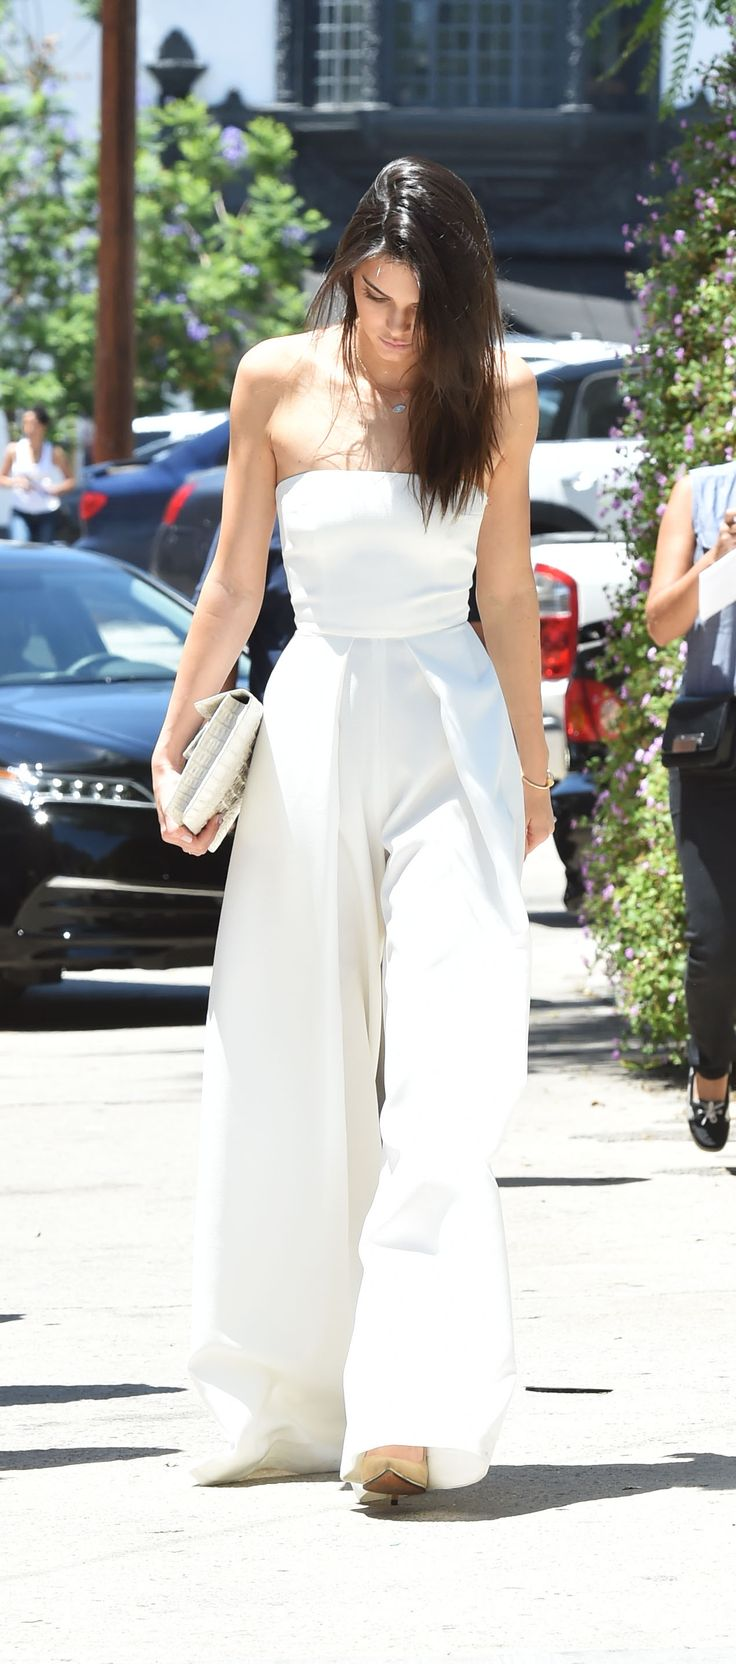 Why Kendall Jenner's Street Style Is a Perfect Look for Unconventional Brides